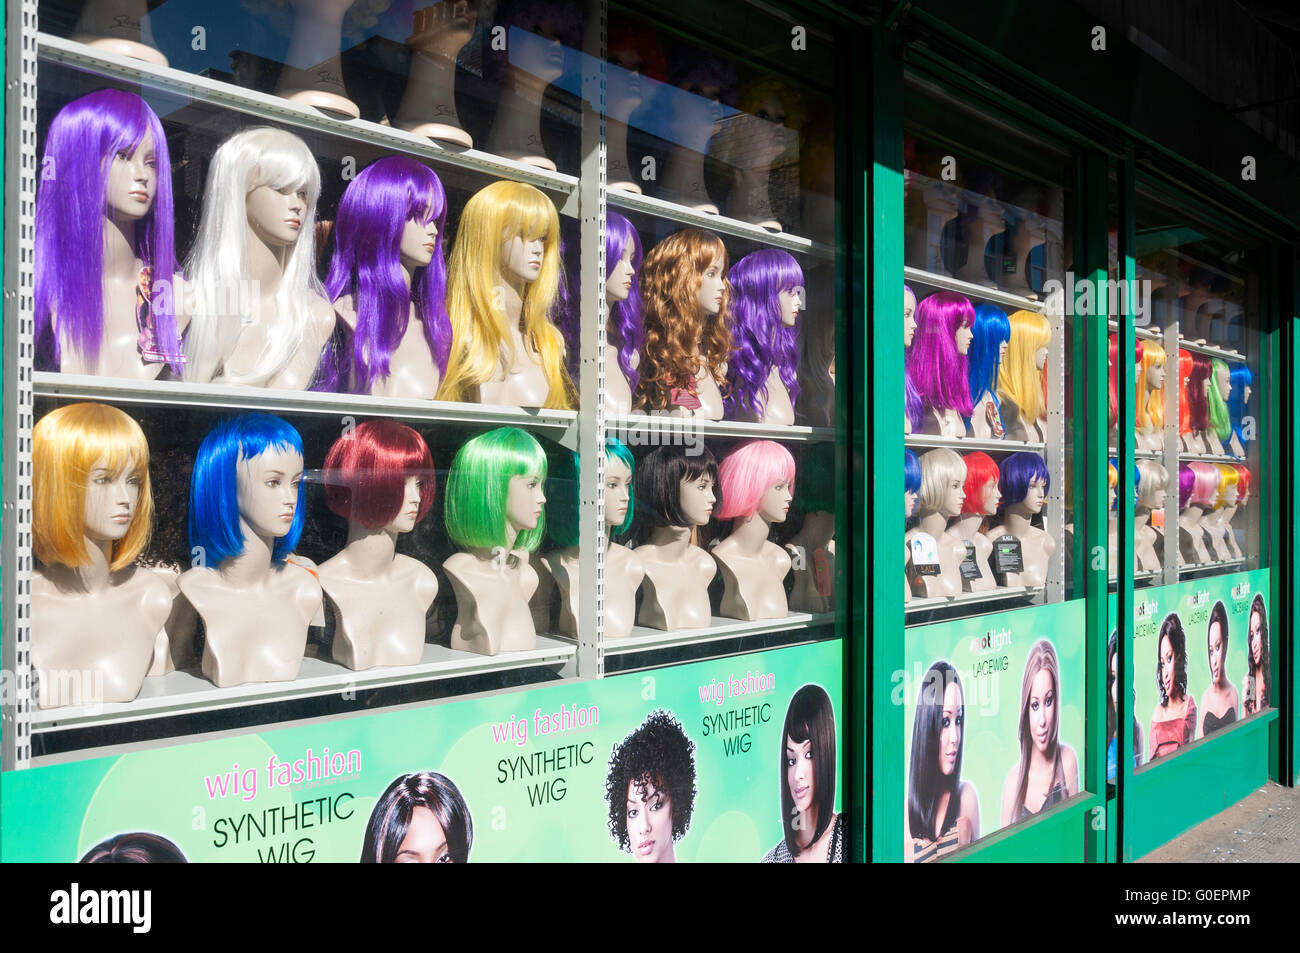 Synthetic wig shop window, Woodstock Road, Finsbury Park, London Borough of Haringey, Greater London, England, United - Stock Image